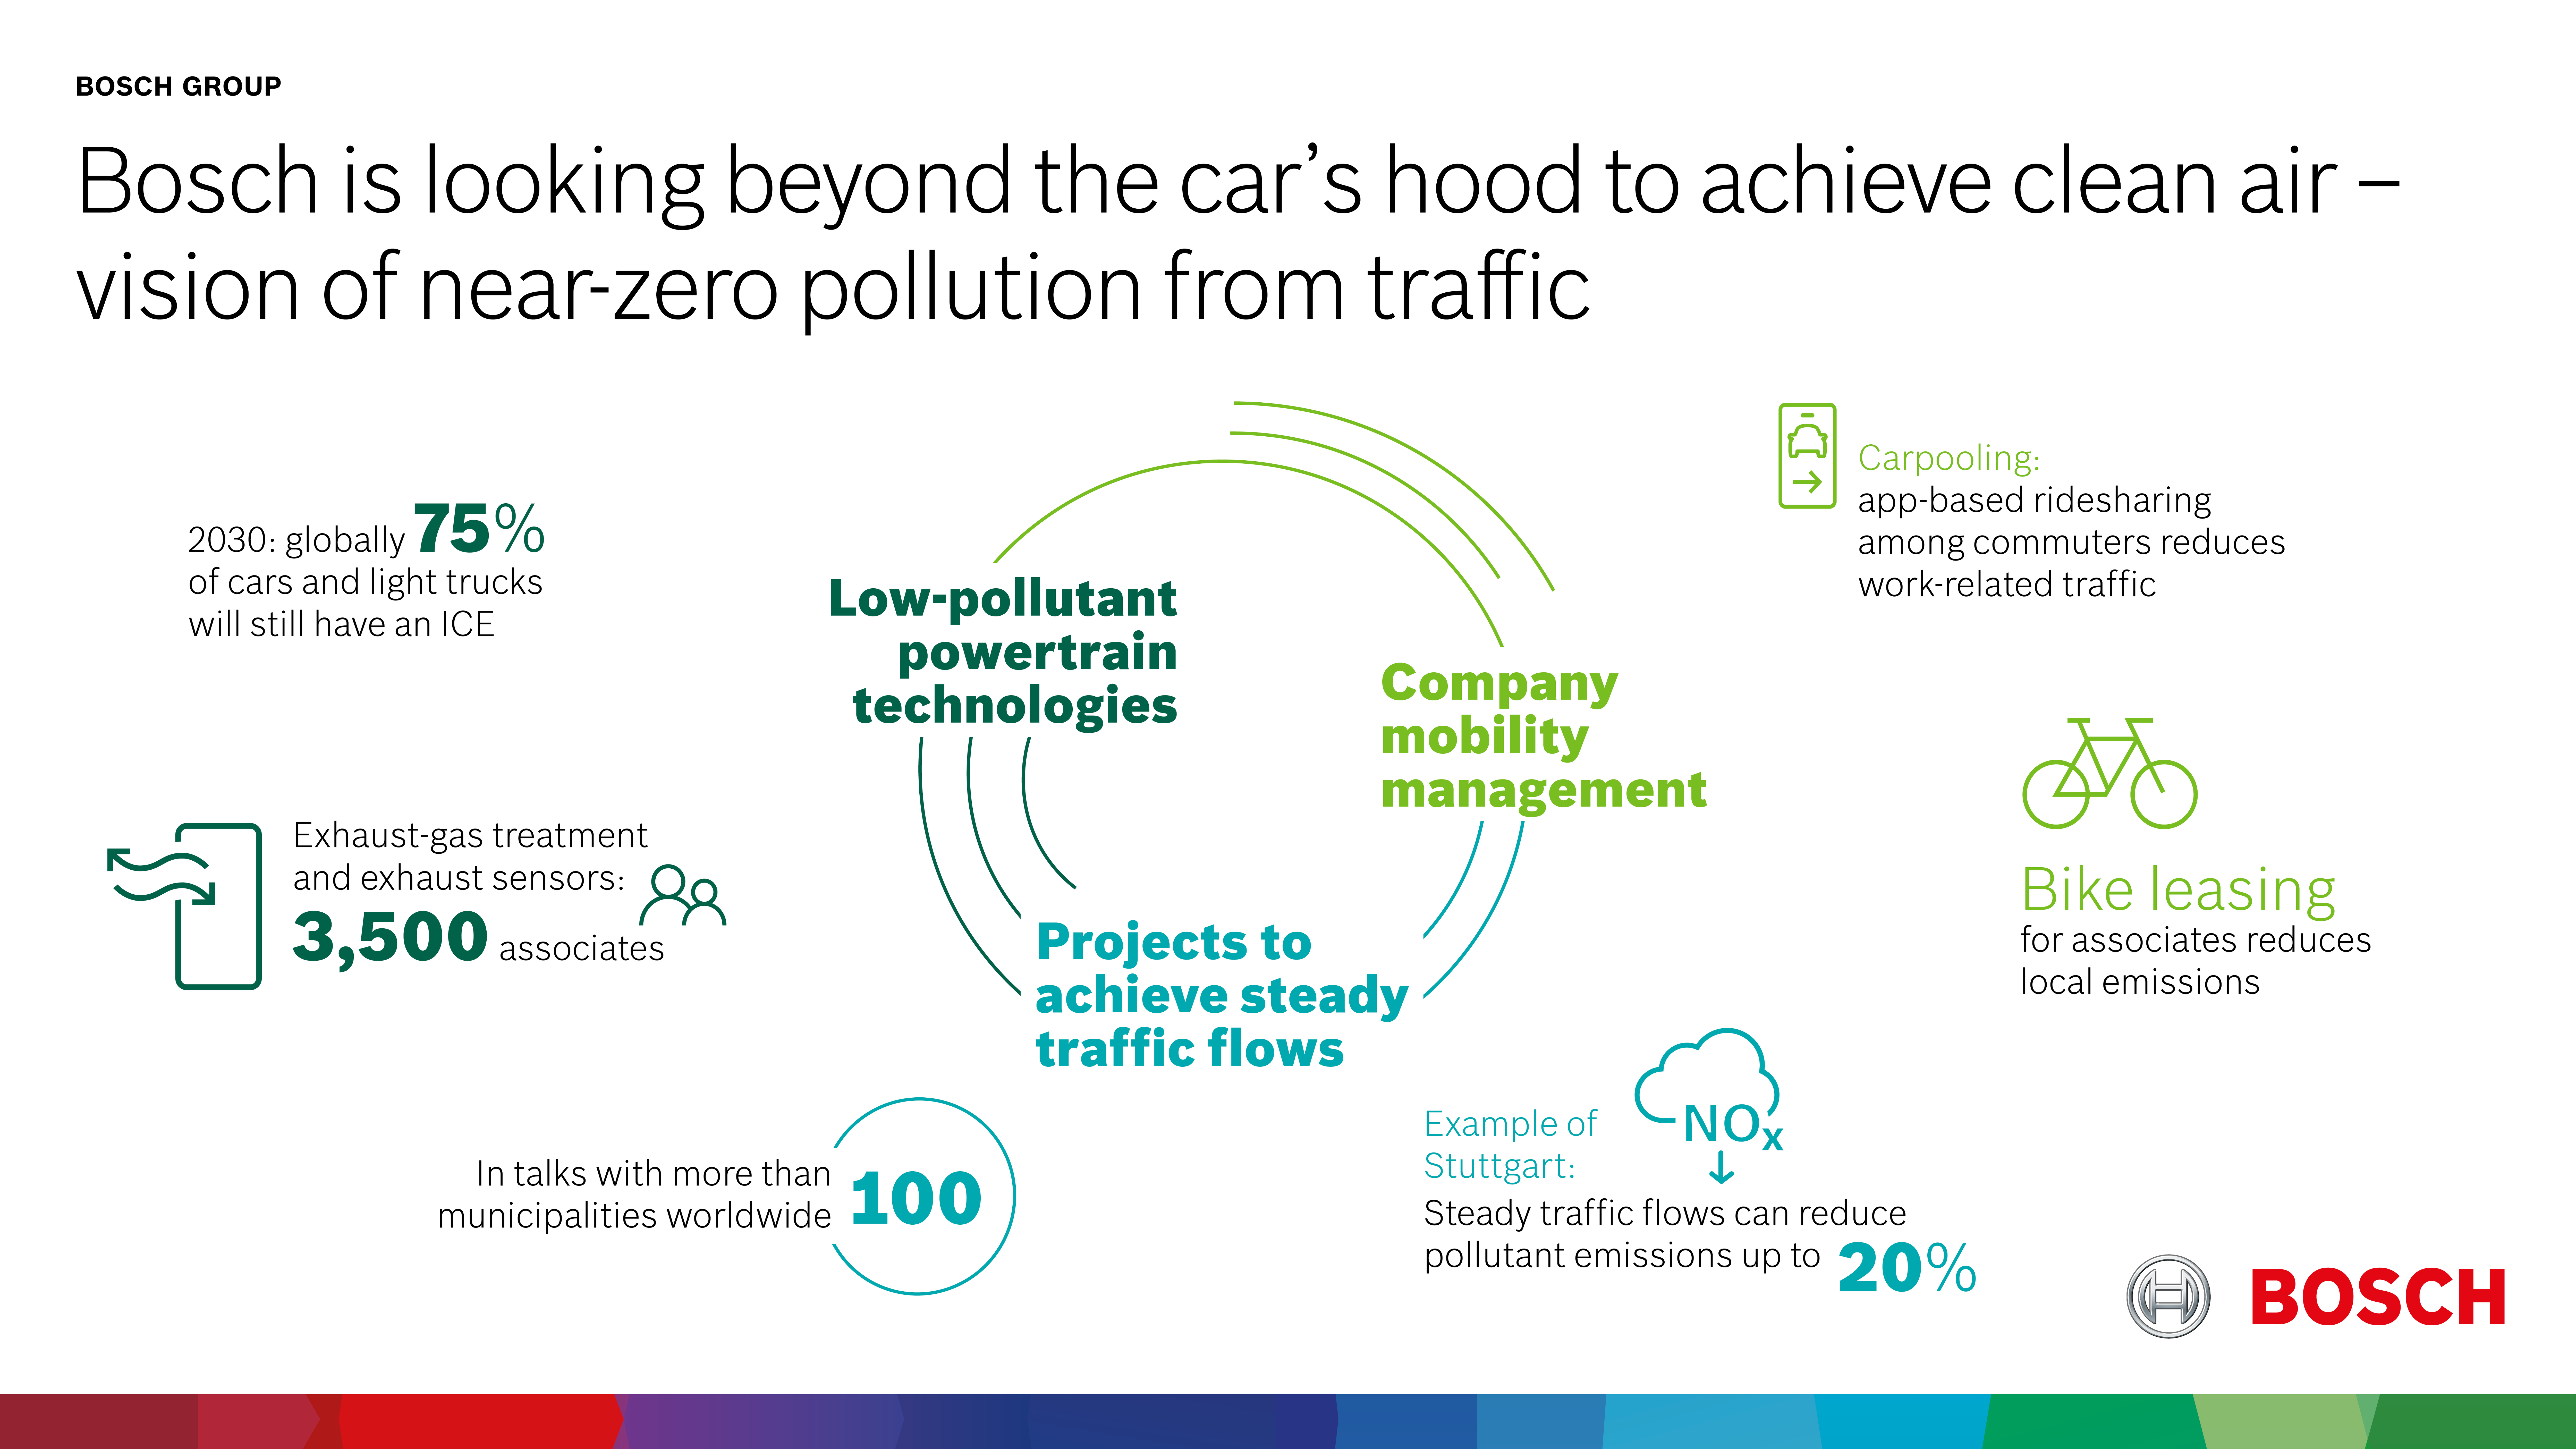 Key to sustainable future mobility is automated and electrified driving